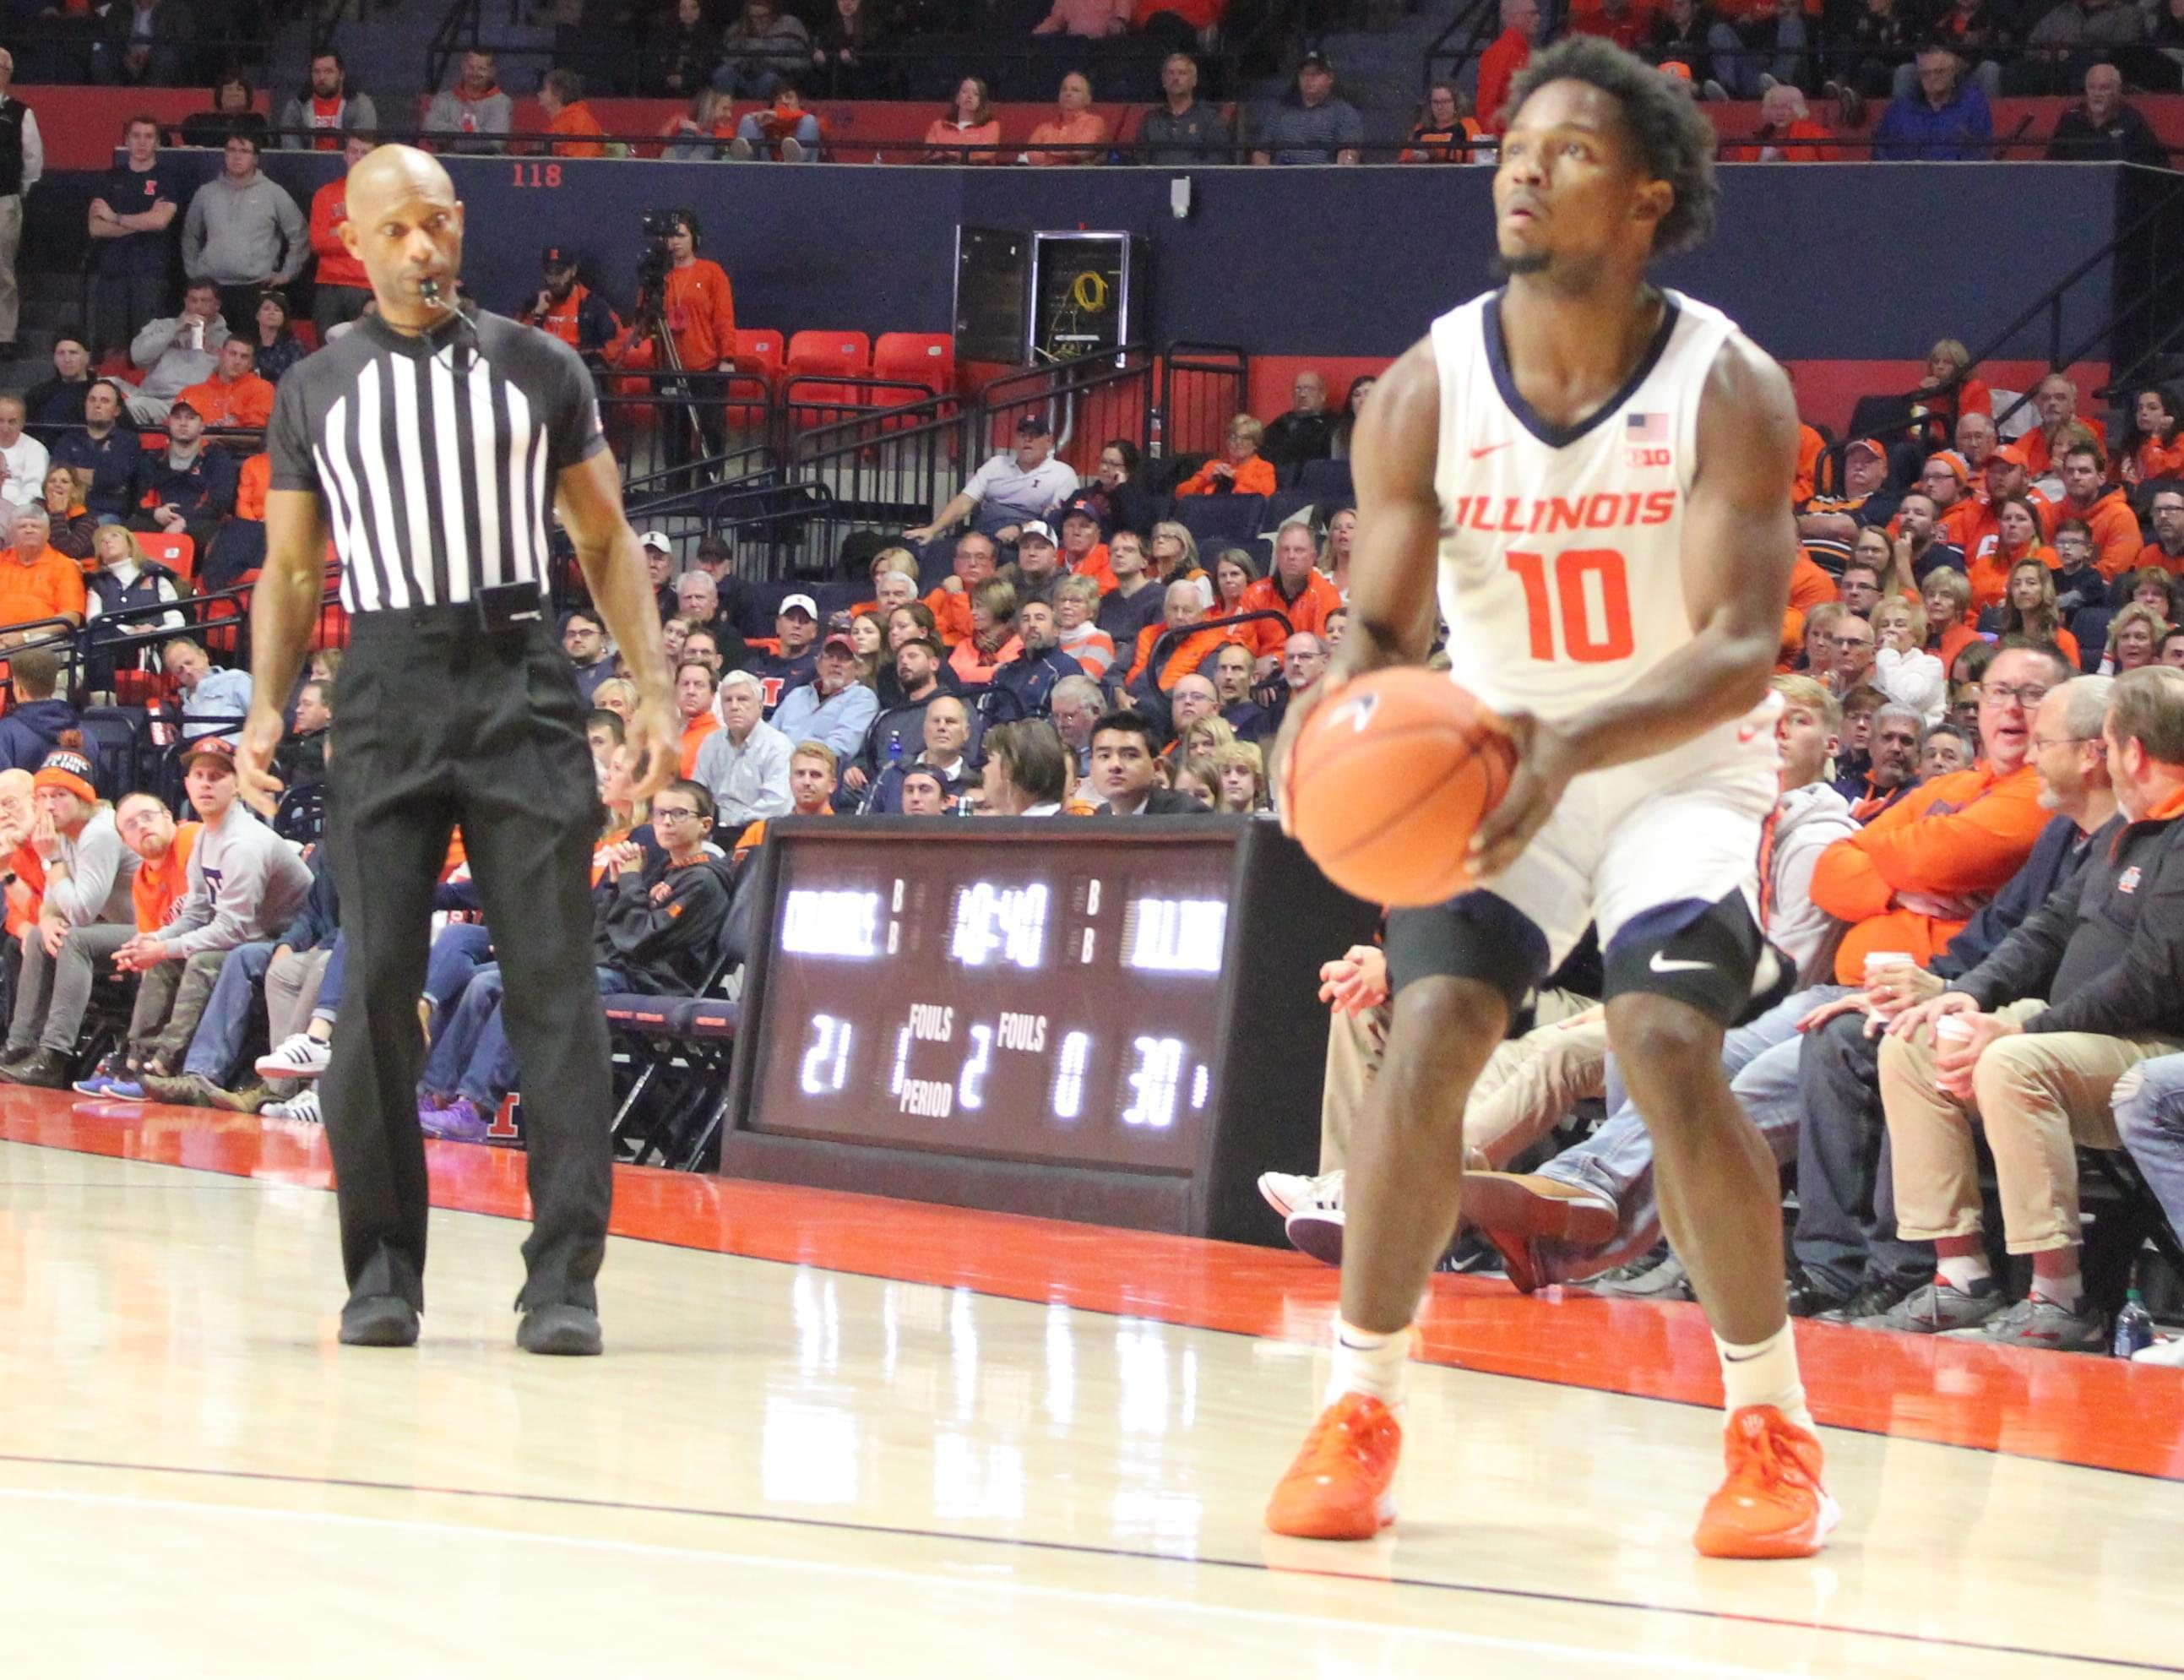 Andre Feliz squares up for a three-pointer during Illinois' 78-70 overtime win over Nicholls State.